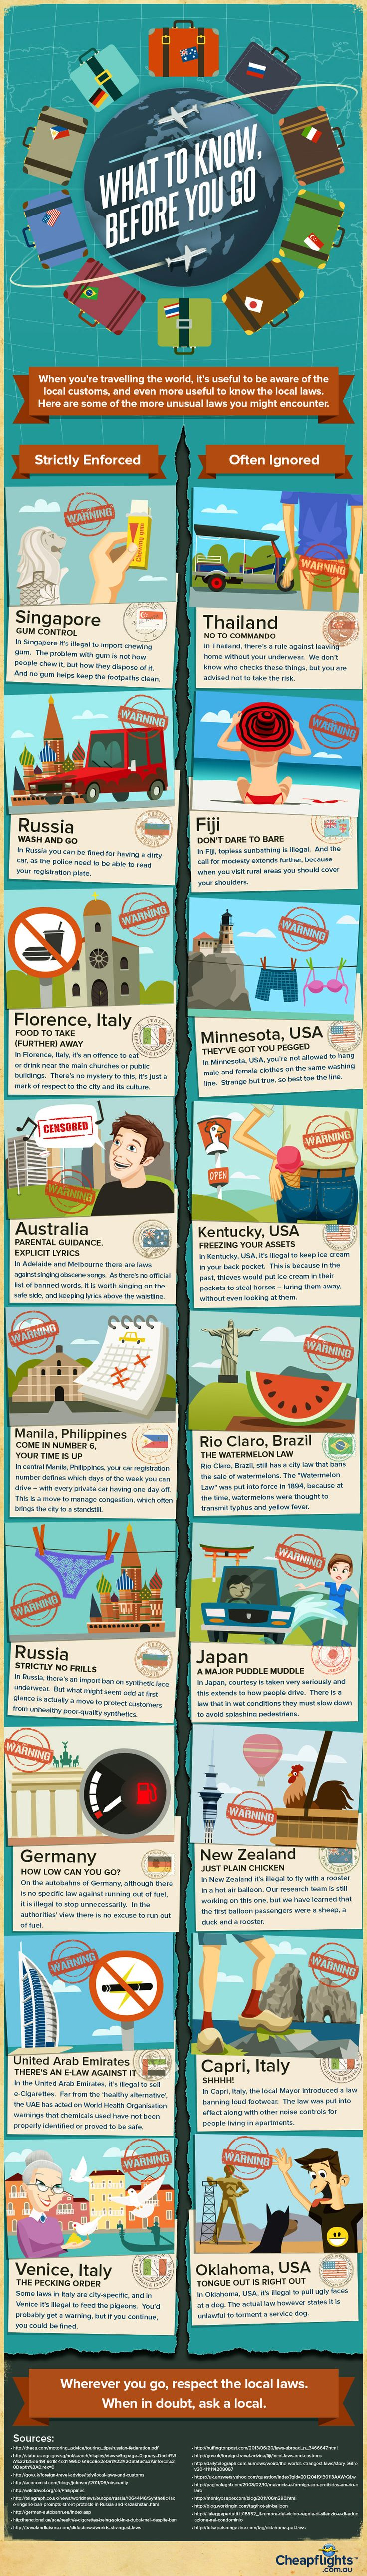 Important Things You Need To Know Before You Go Travel [Infographic]